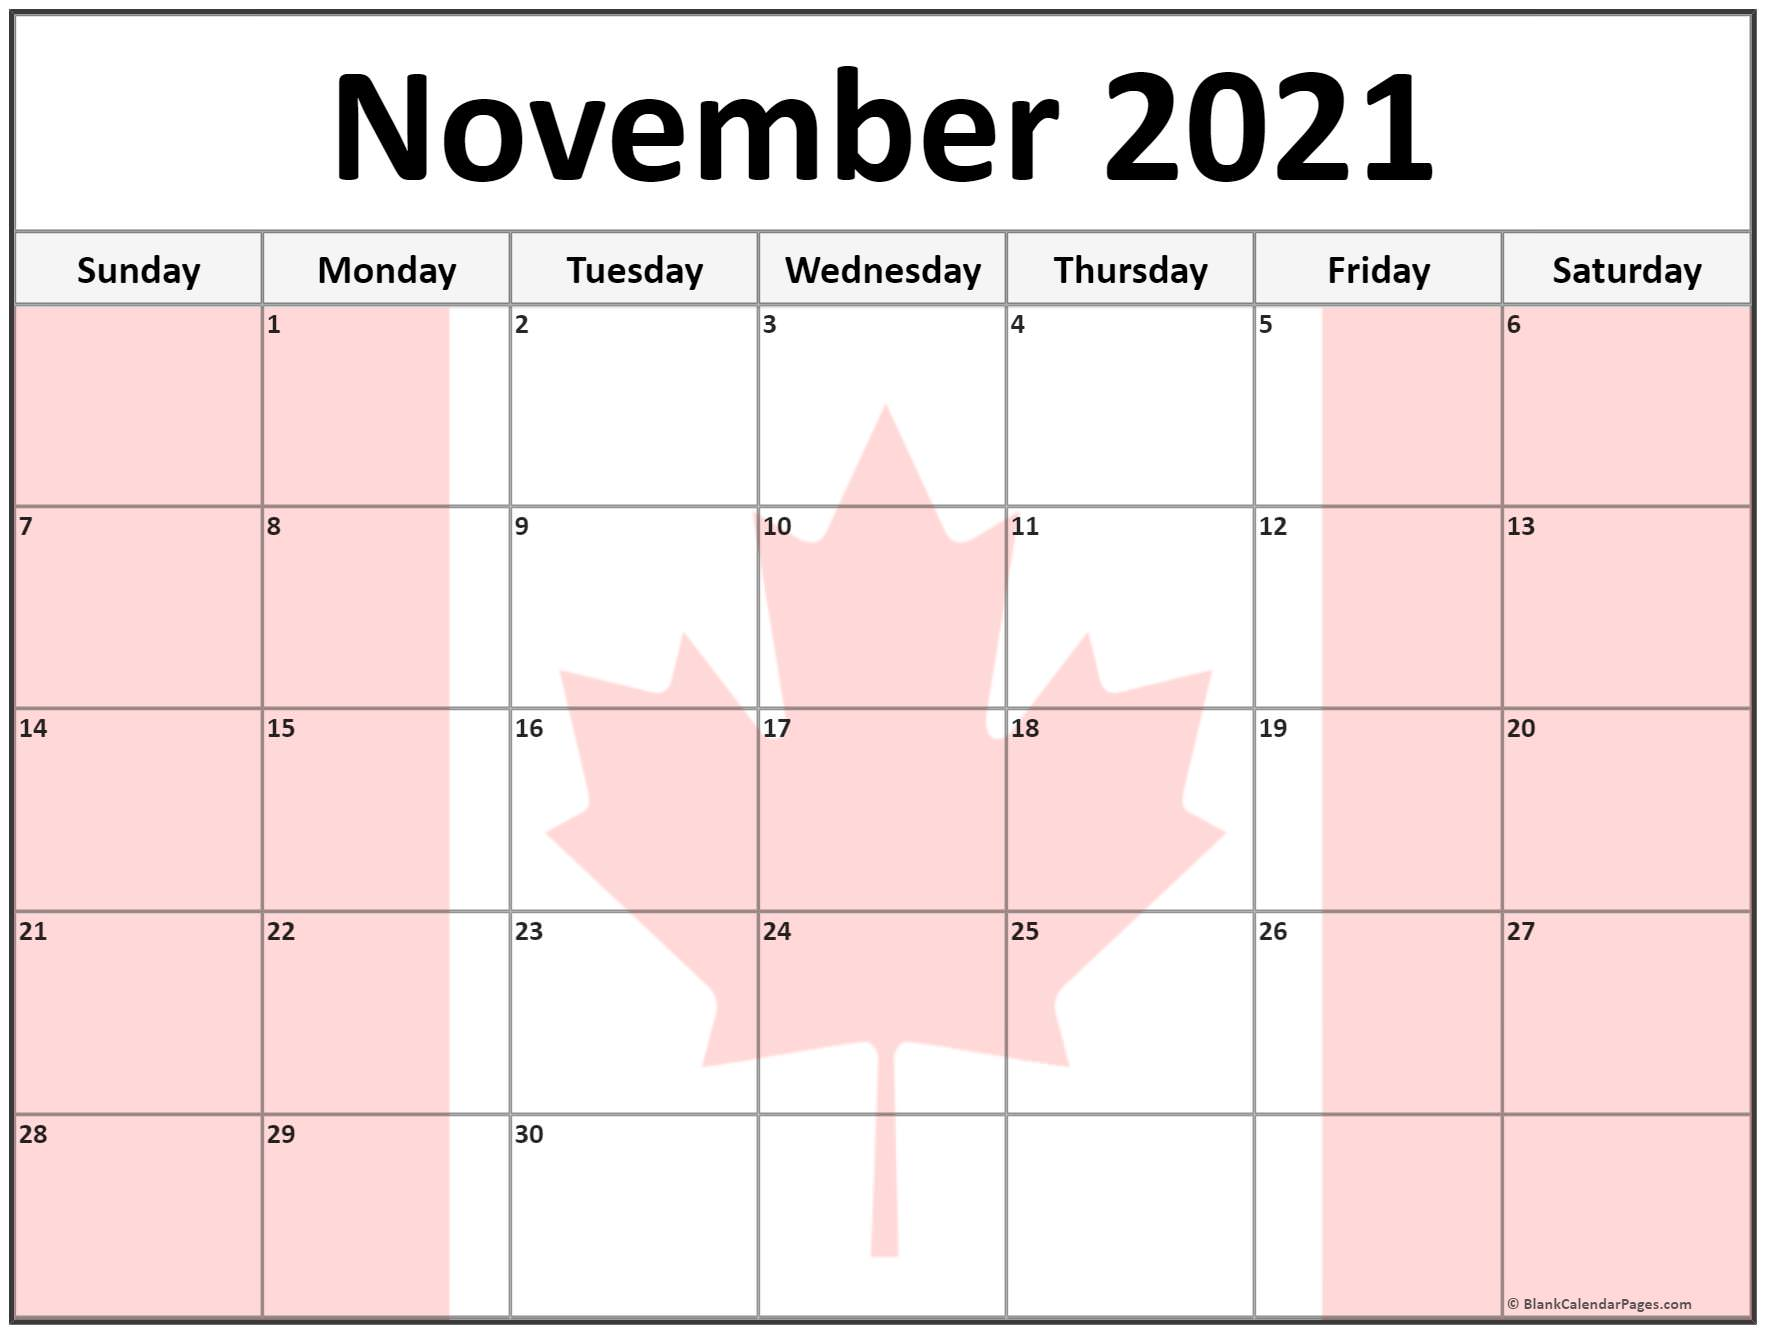 November 2020 Canada flag monthly calendar printout